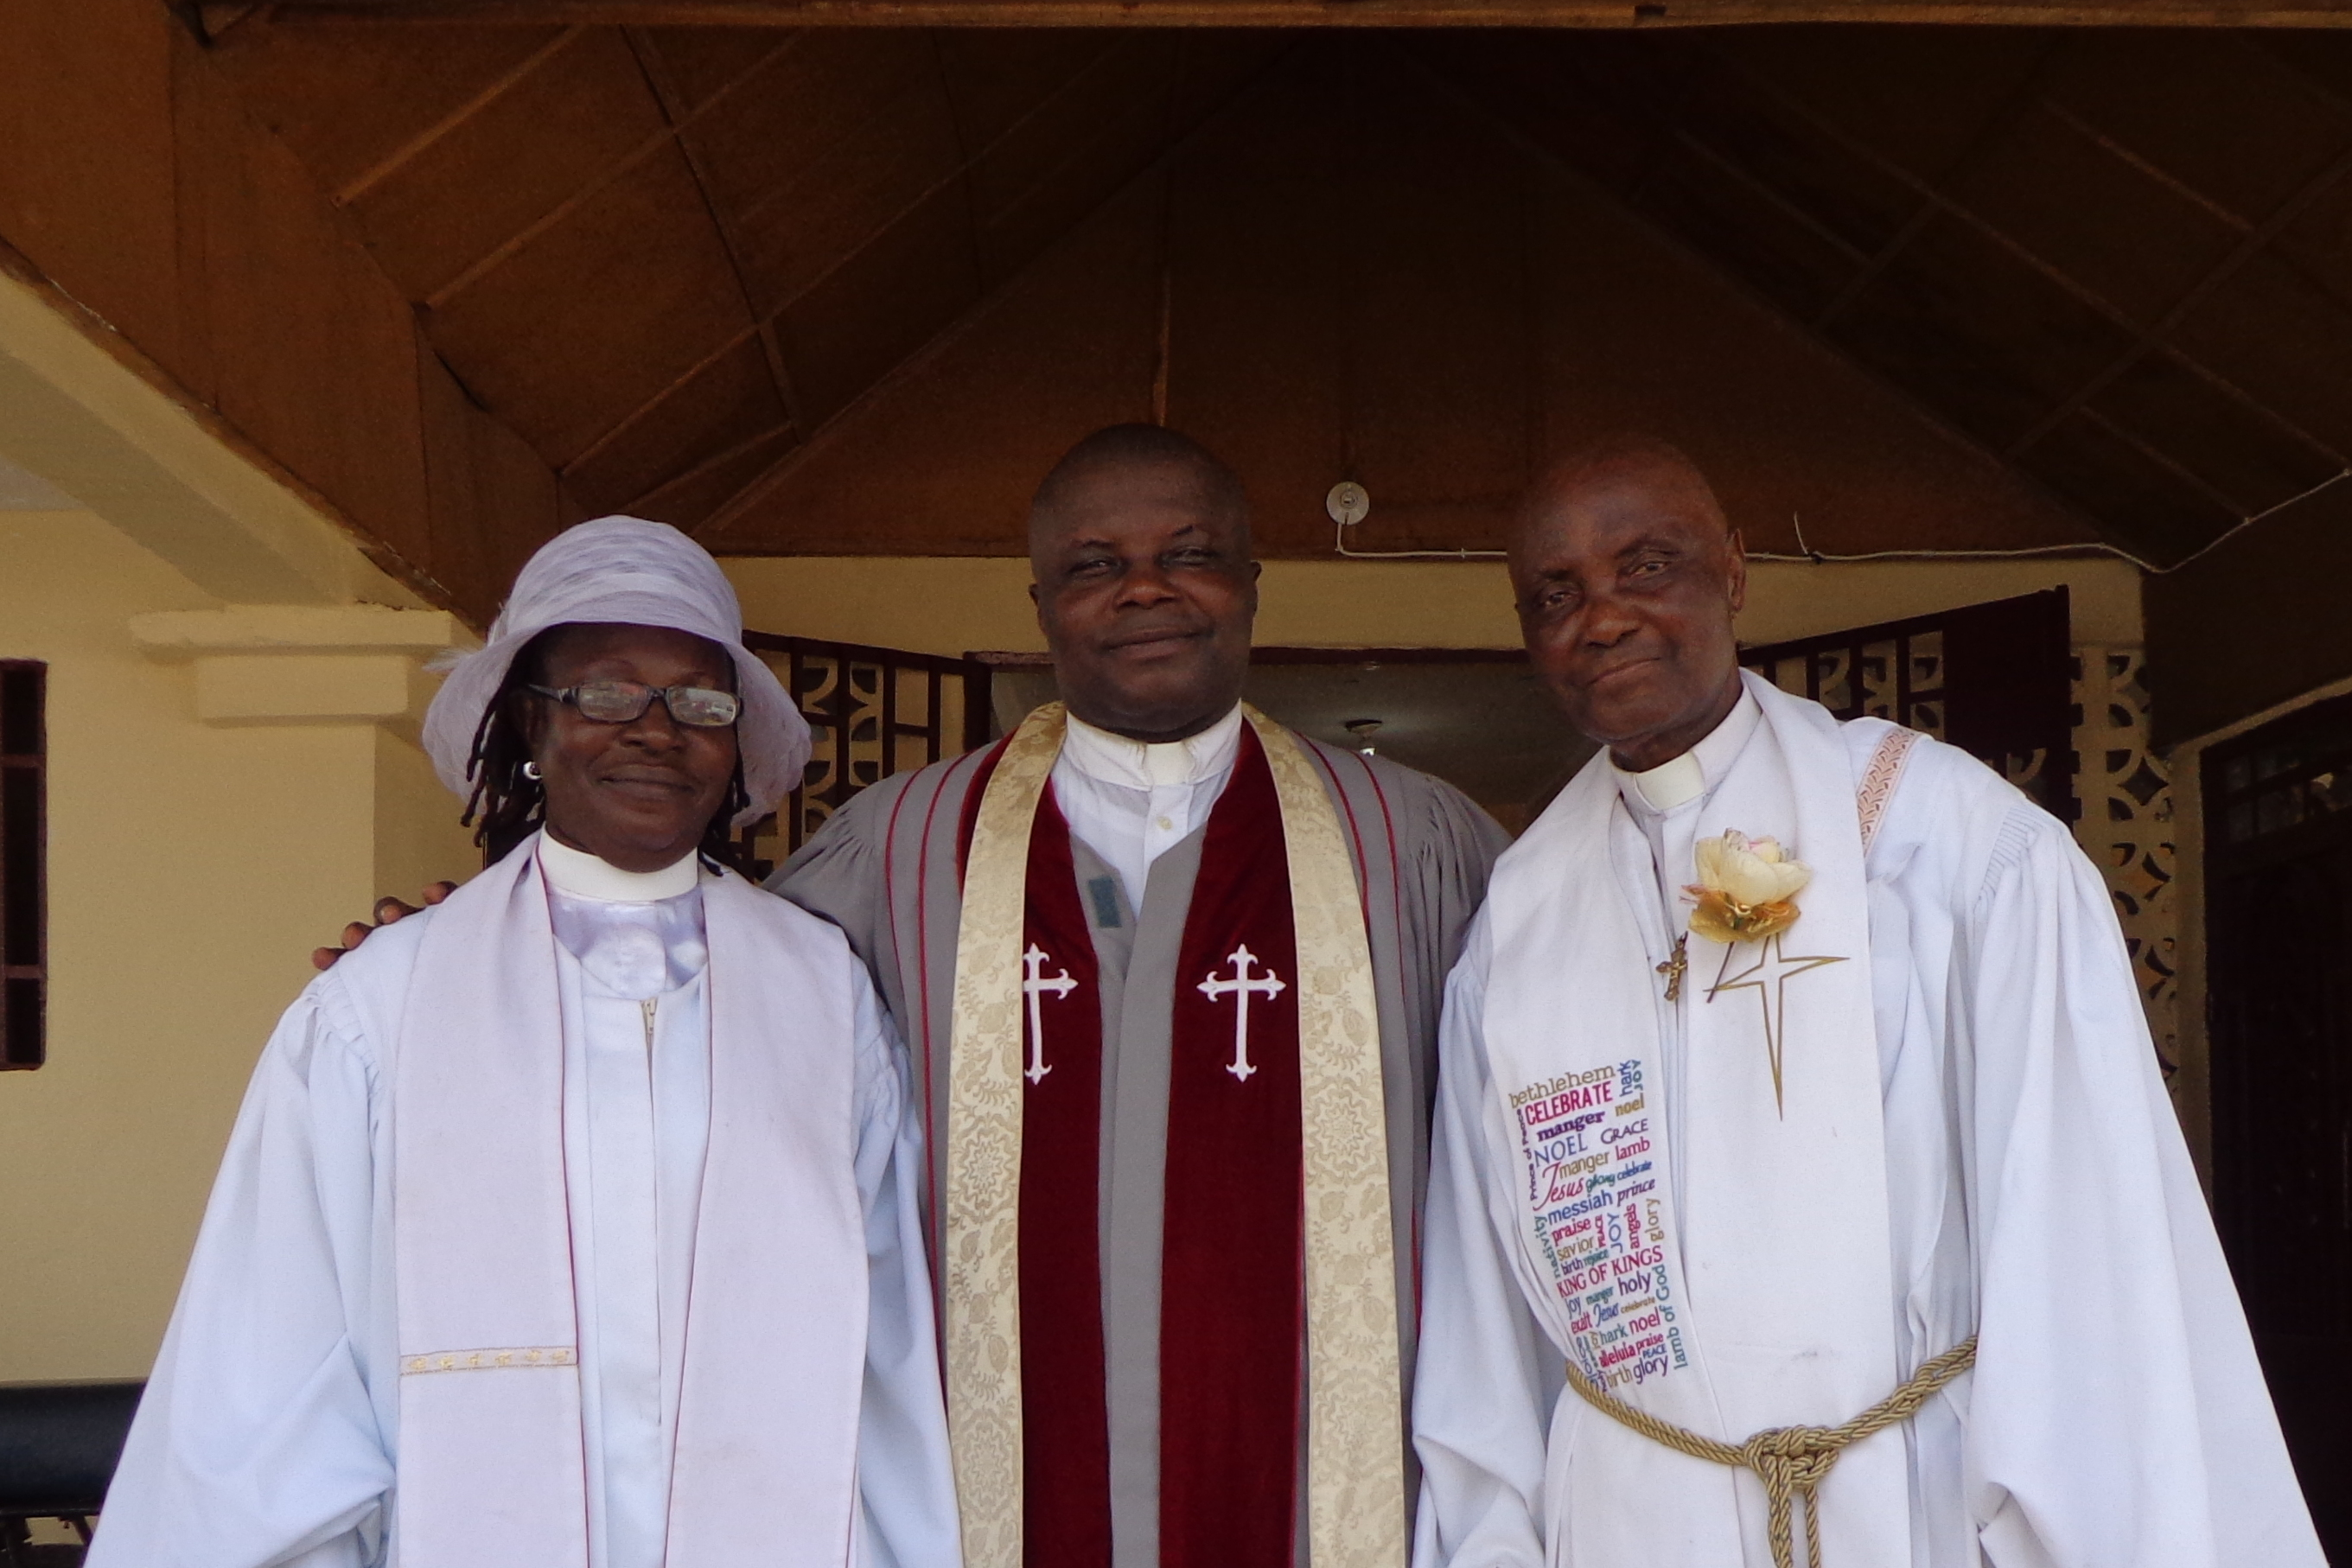 Candidating for methodist ministers